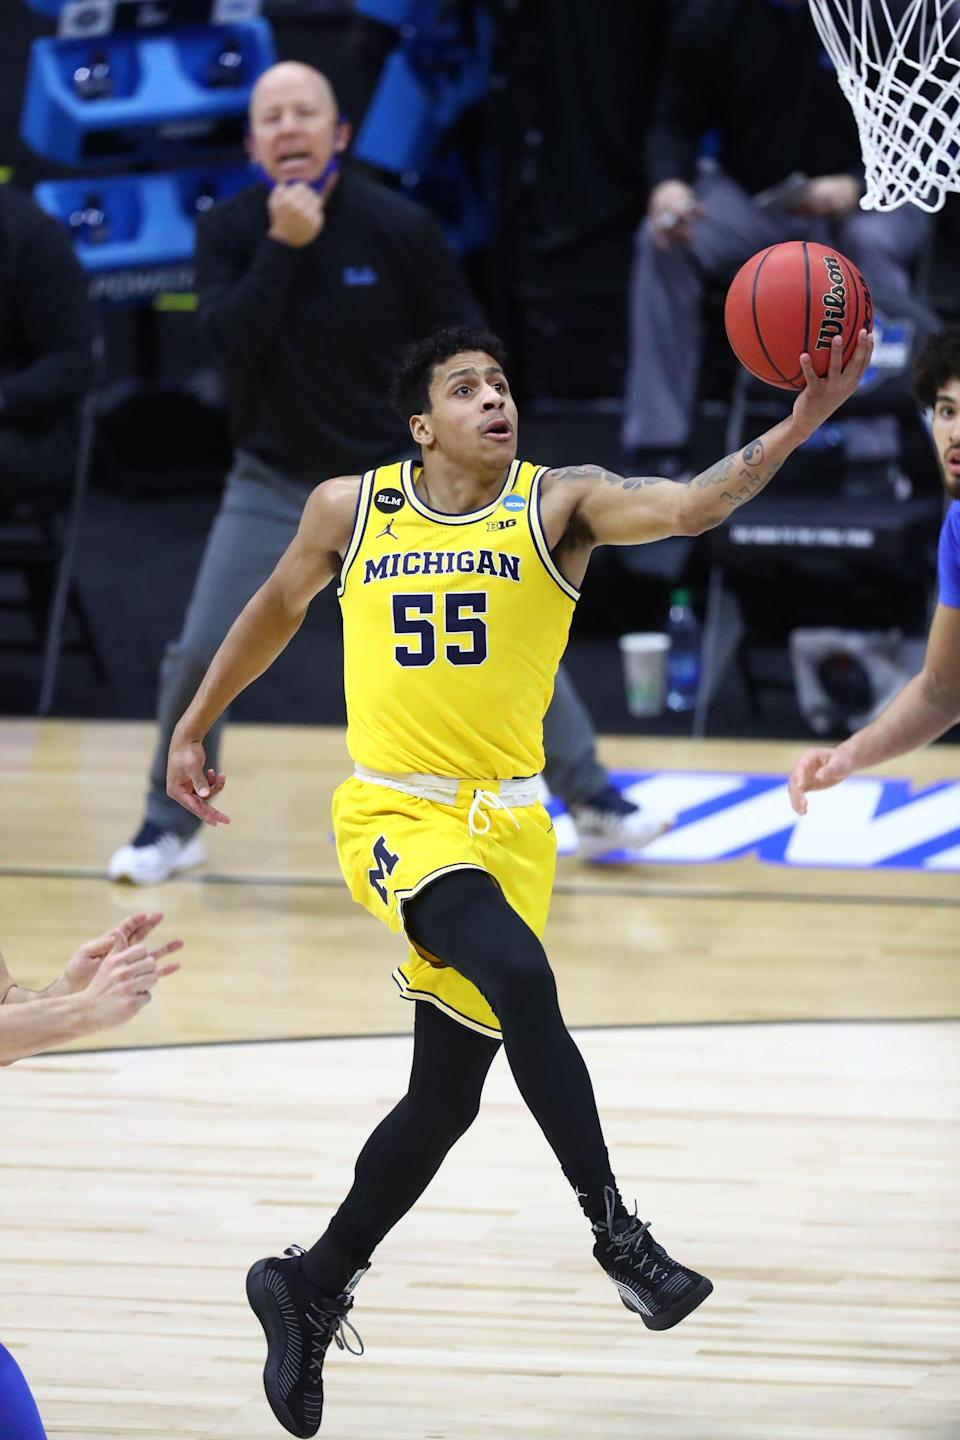 Michigan guard Eli Brooks goes up for a layup during the first half of an Elite Eight game in the NCAA tournament on Tuesday, March 30, 2021, in Indianapolis.